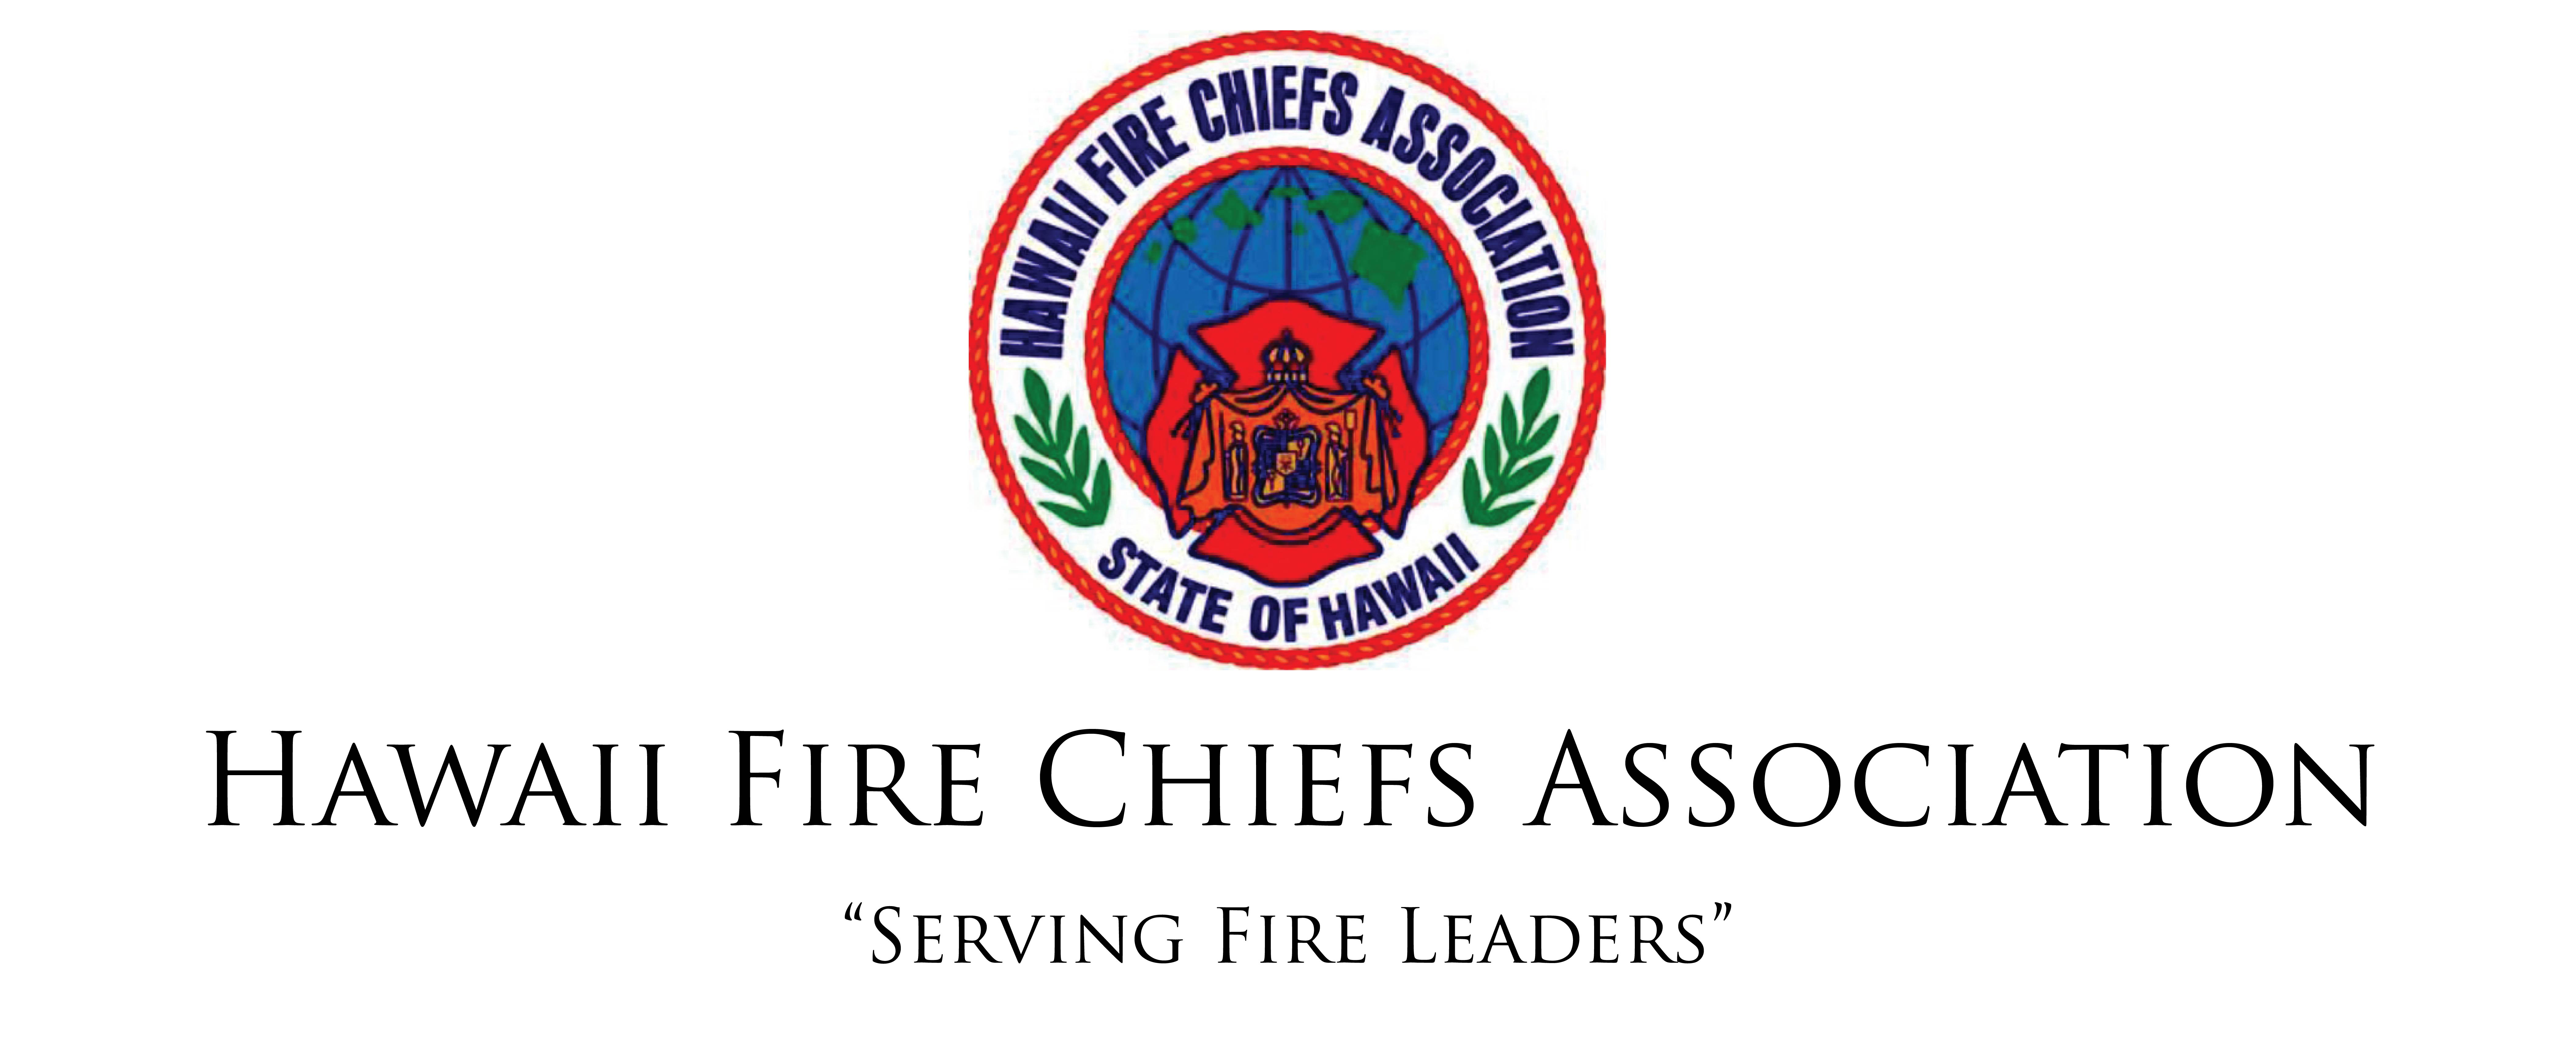 Hawaii Fire Chiefs Association